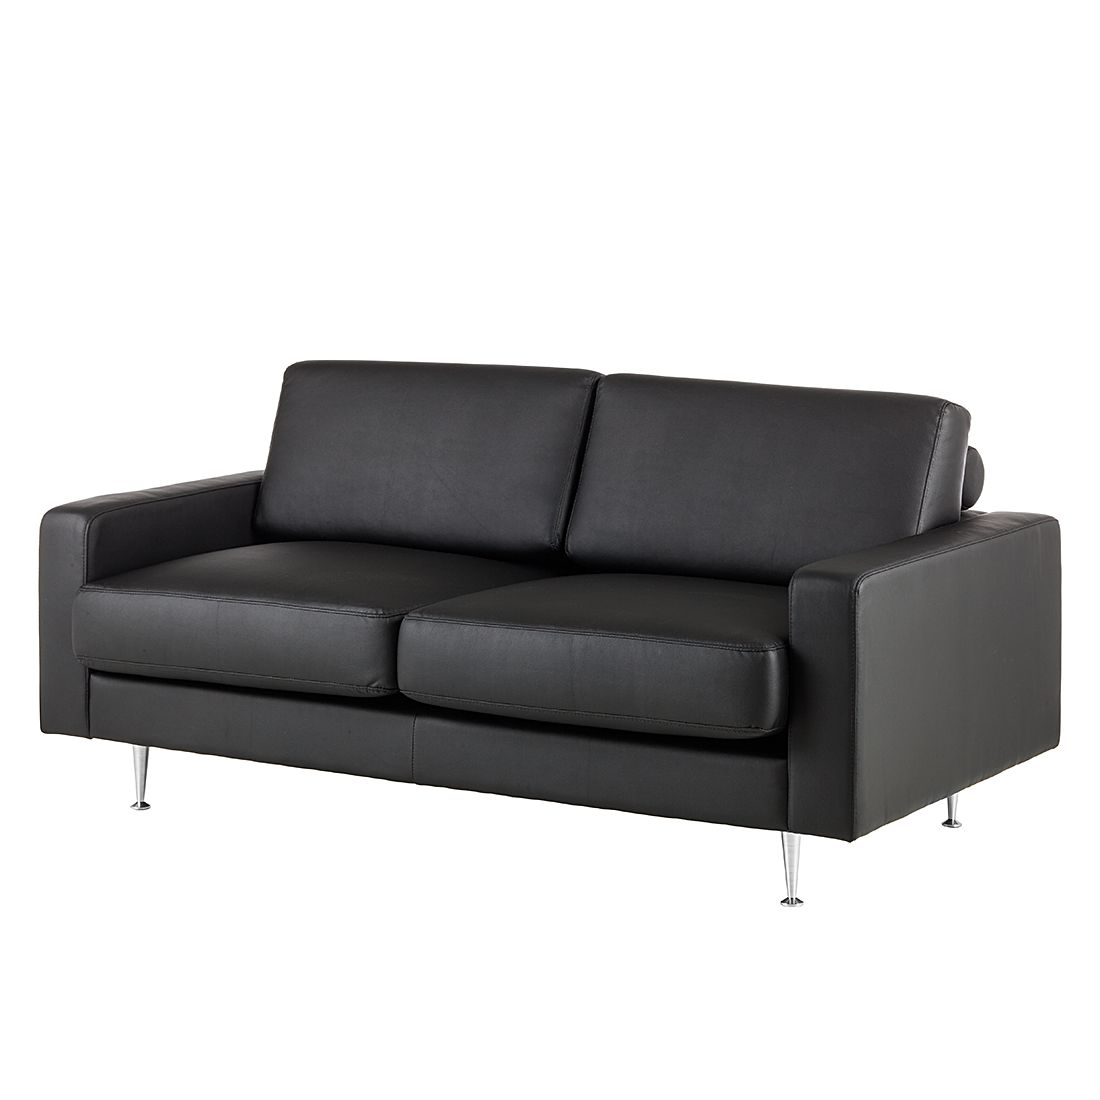 sofa laval 2 sitzer kunstleder schwarz fredriks g nstig. Black Bedroom Furniture Sets. Home Design Ideas